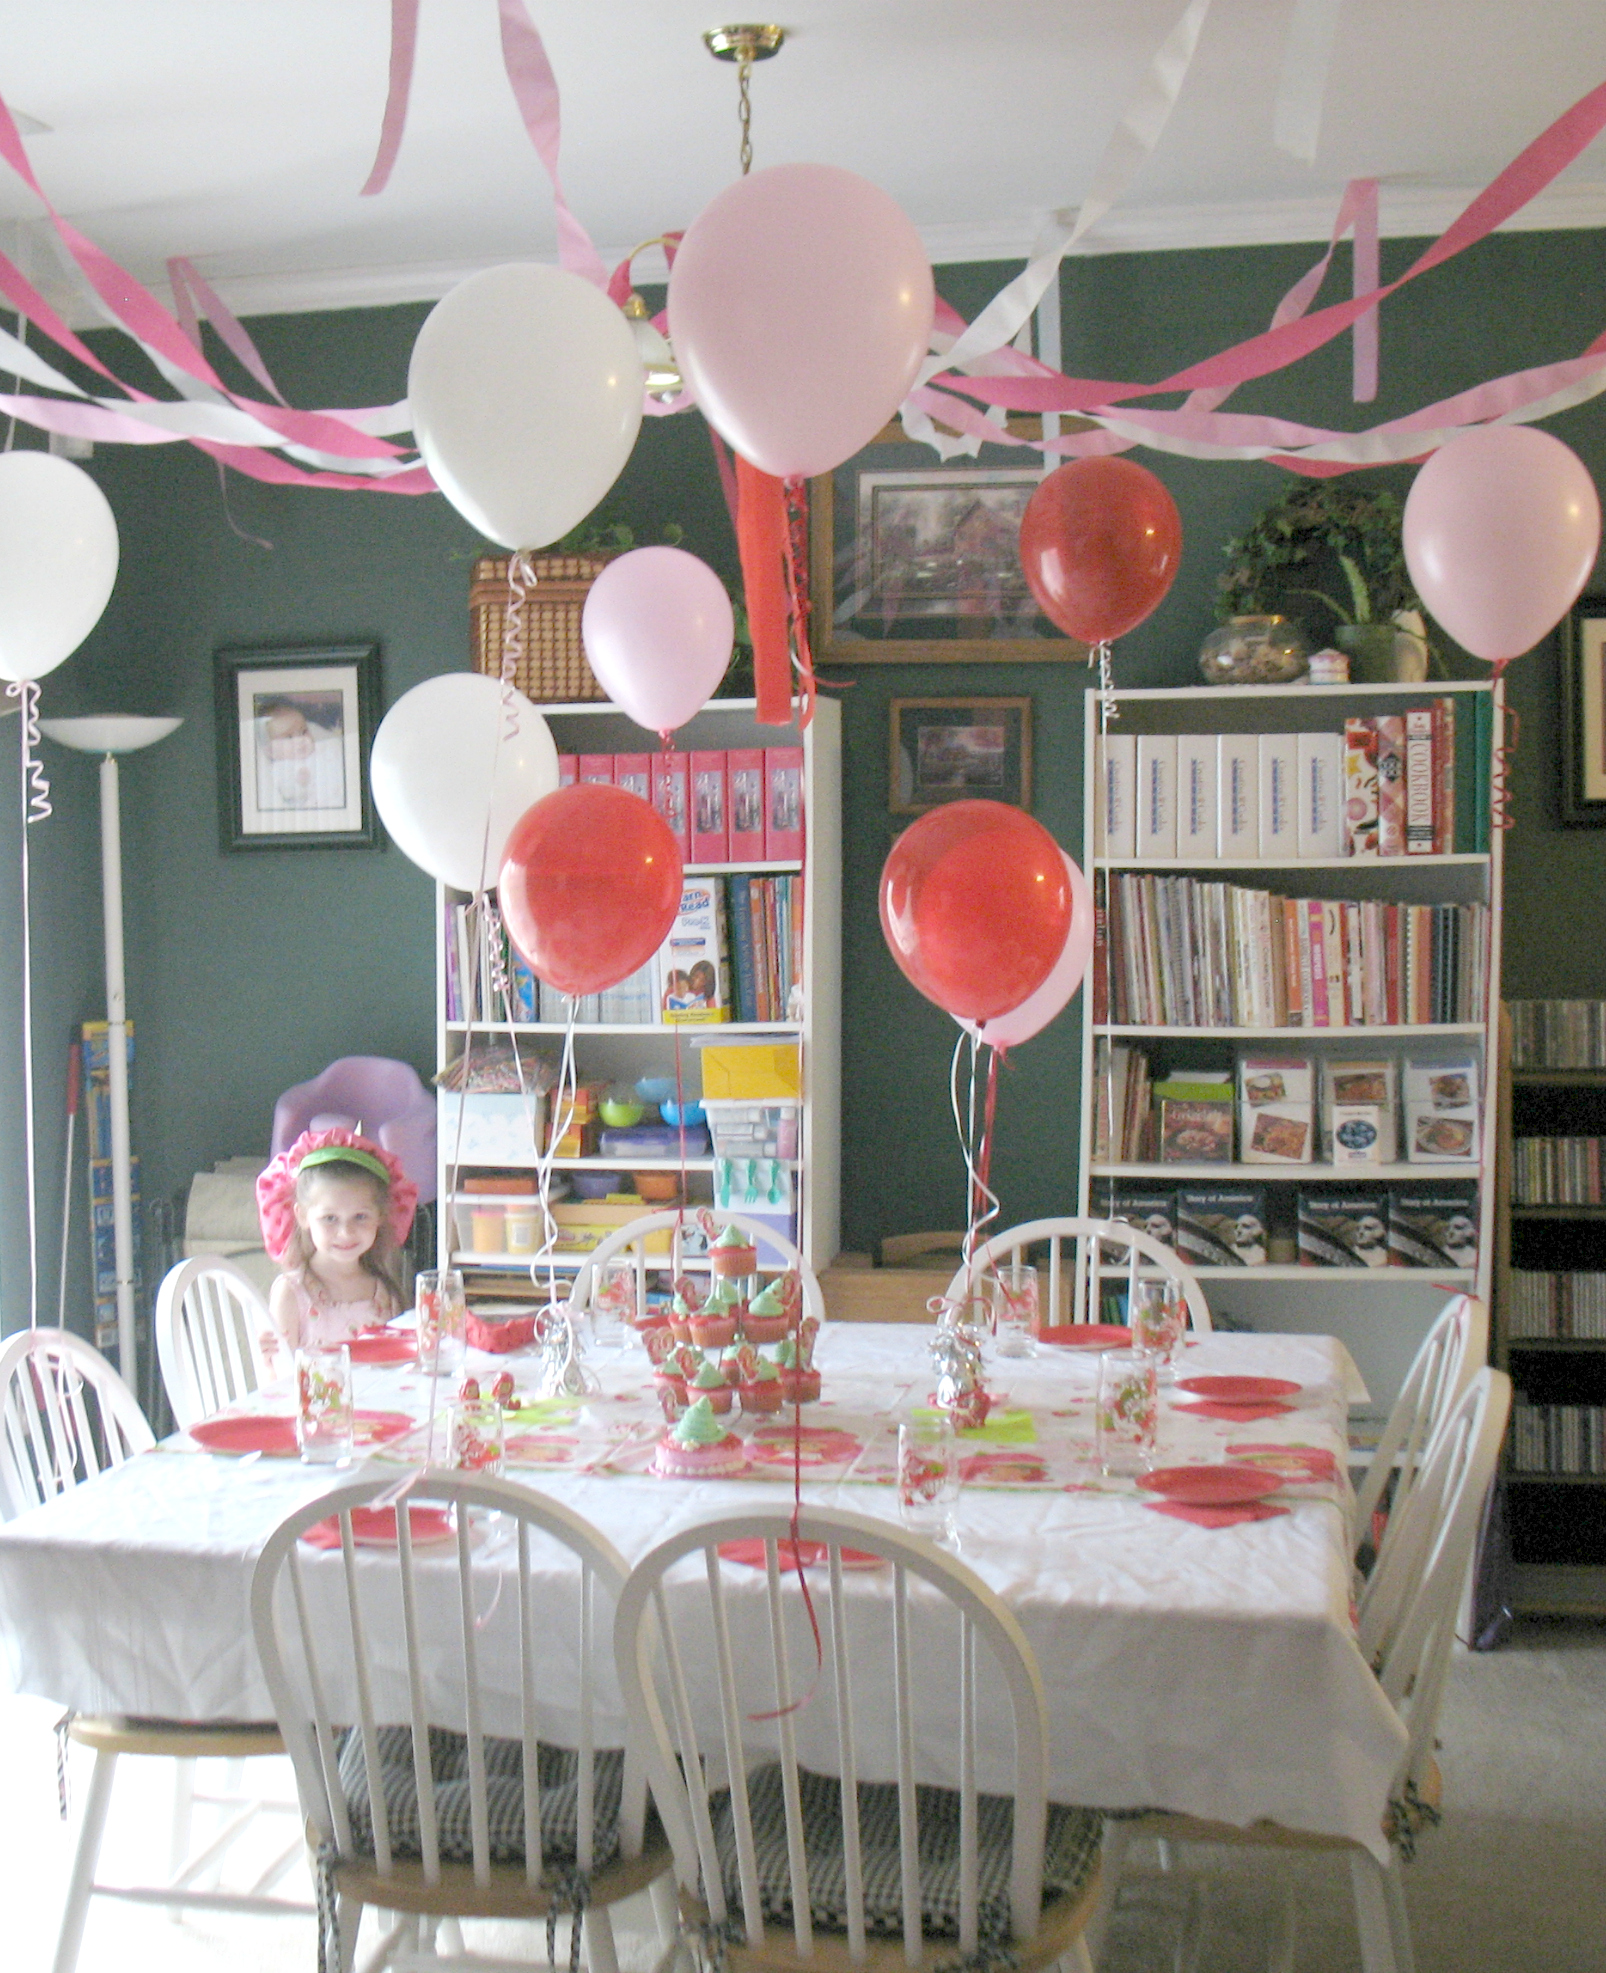 Birthday party table decorations fun ideas for school Table decoration ideas for parties